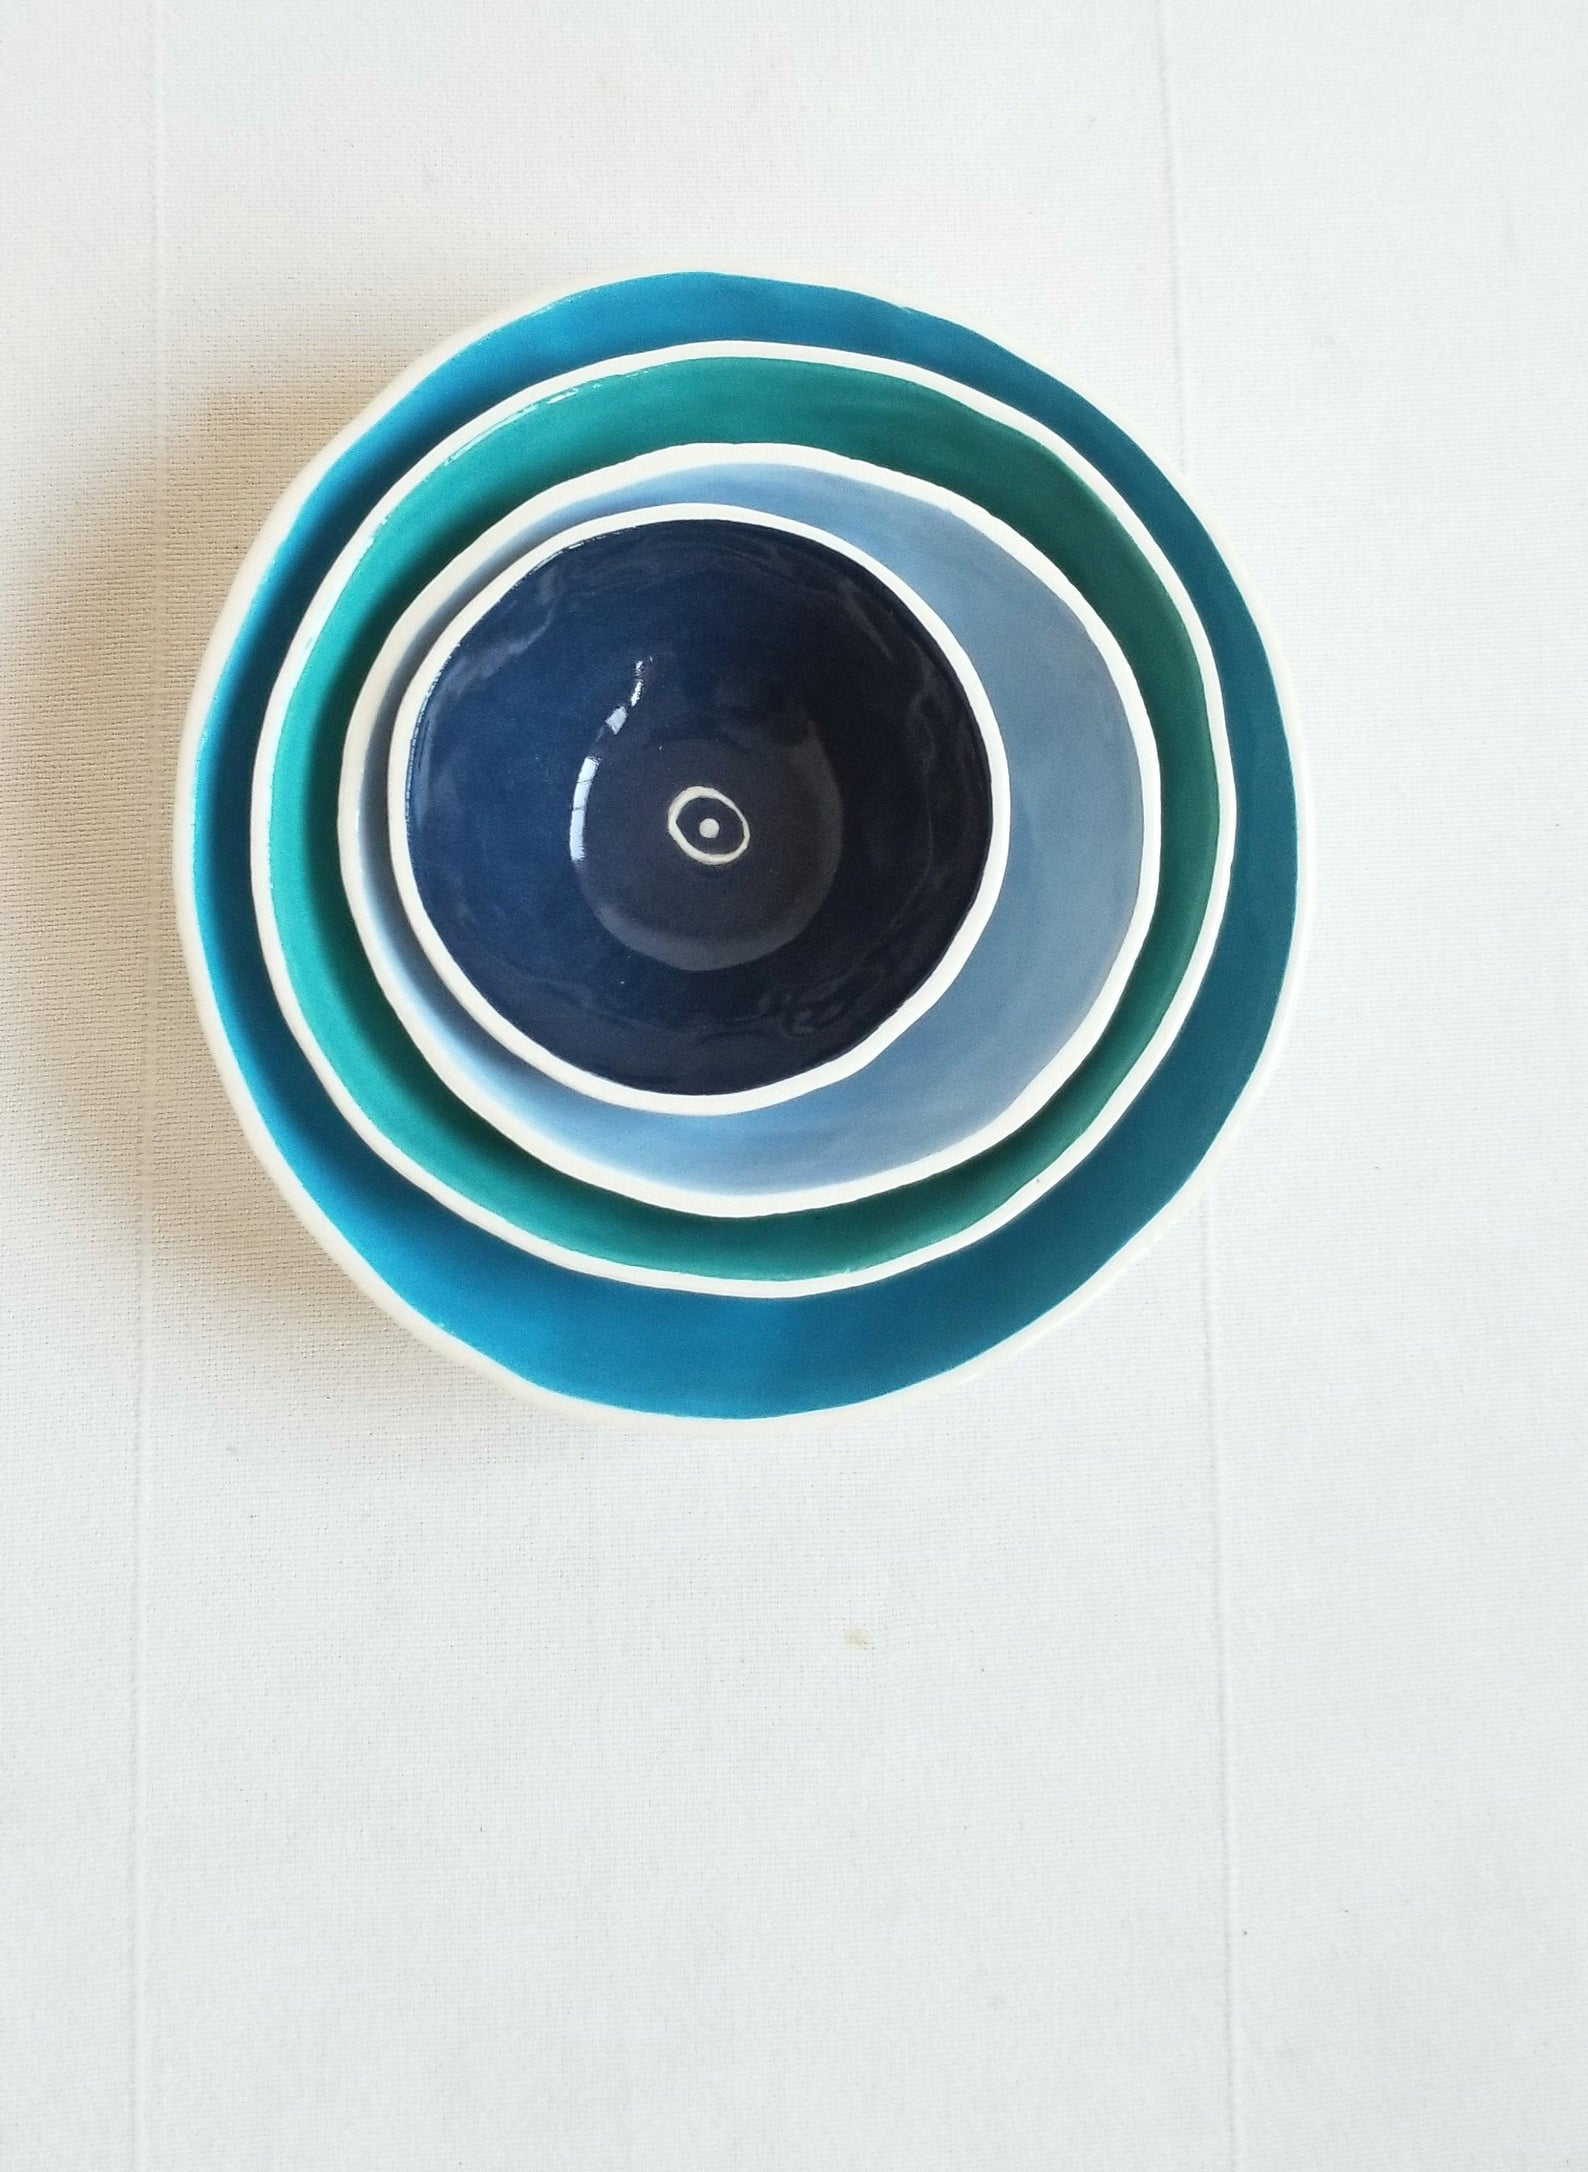 Best Hanukkah gifts from small businesses: This Handmade nesting bowl set is beautiful